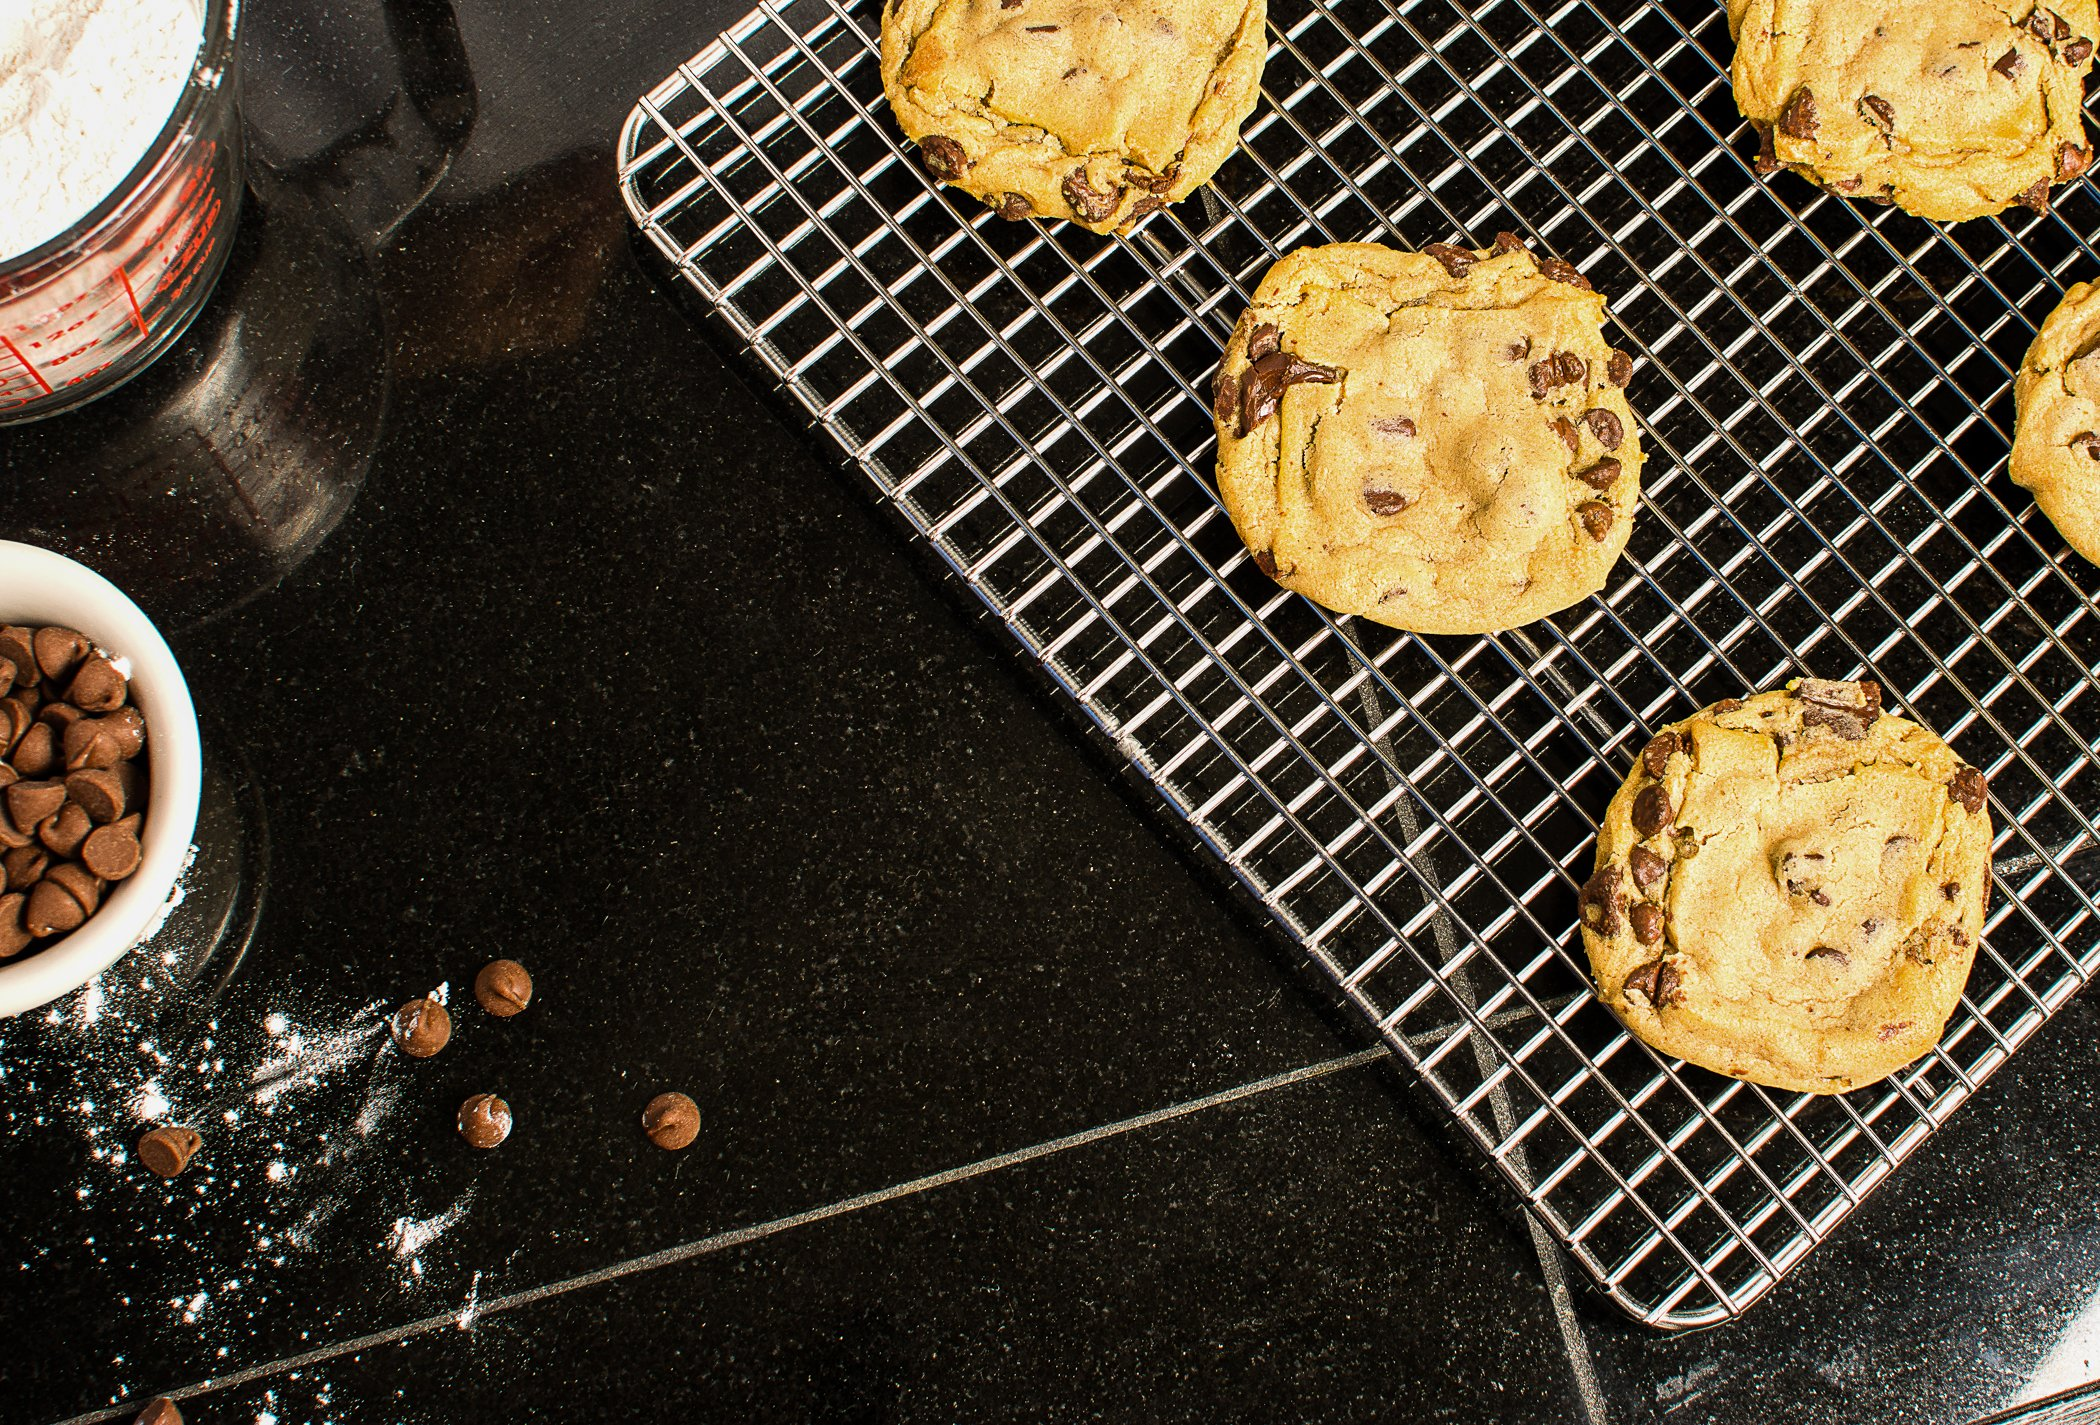 KITCHENATICS Baking Sheet with Cooling Rack: Half Aluminum Cookie Pan Tray with Stainless Steel Wire and Roasting Rack - 13.1'' x 17.9'', Heavy Duty Commercial Quality by KITCHENATICS (Image #9)